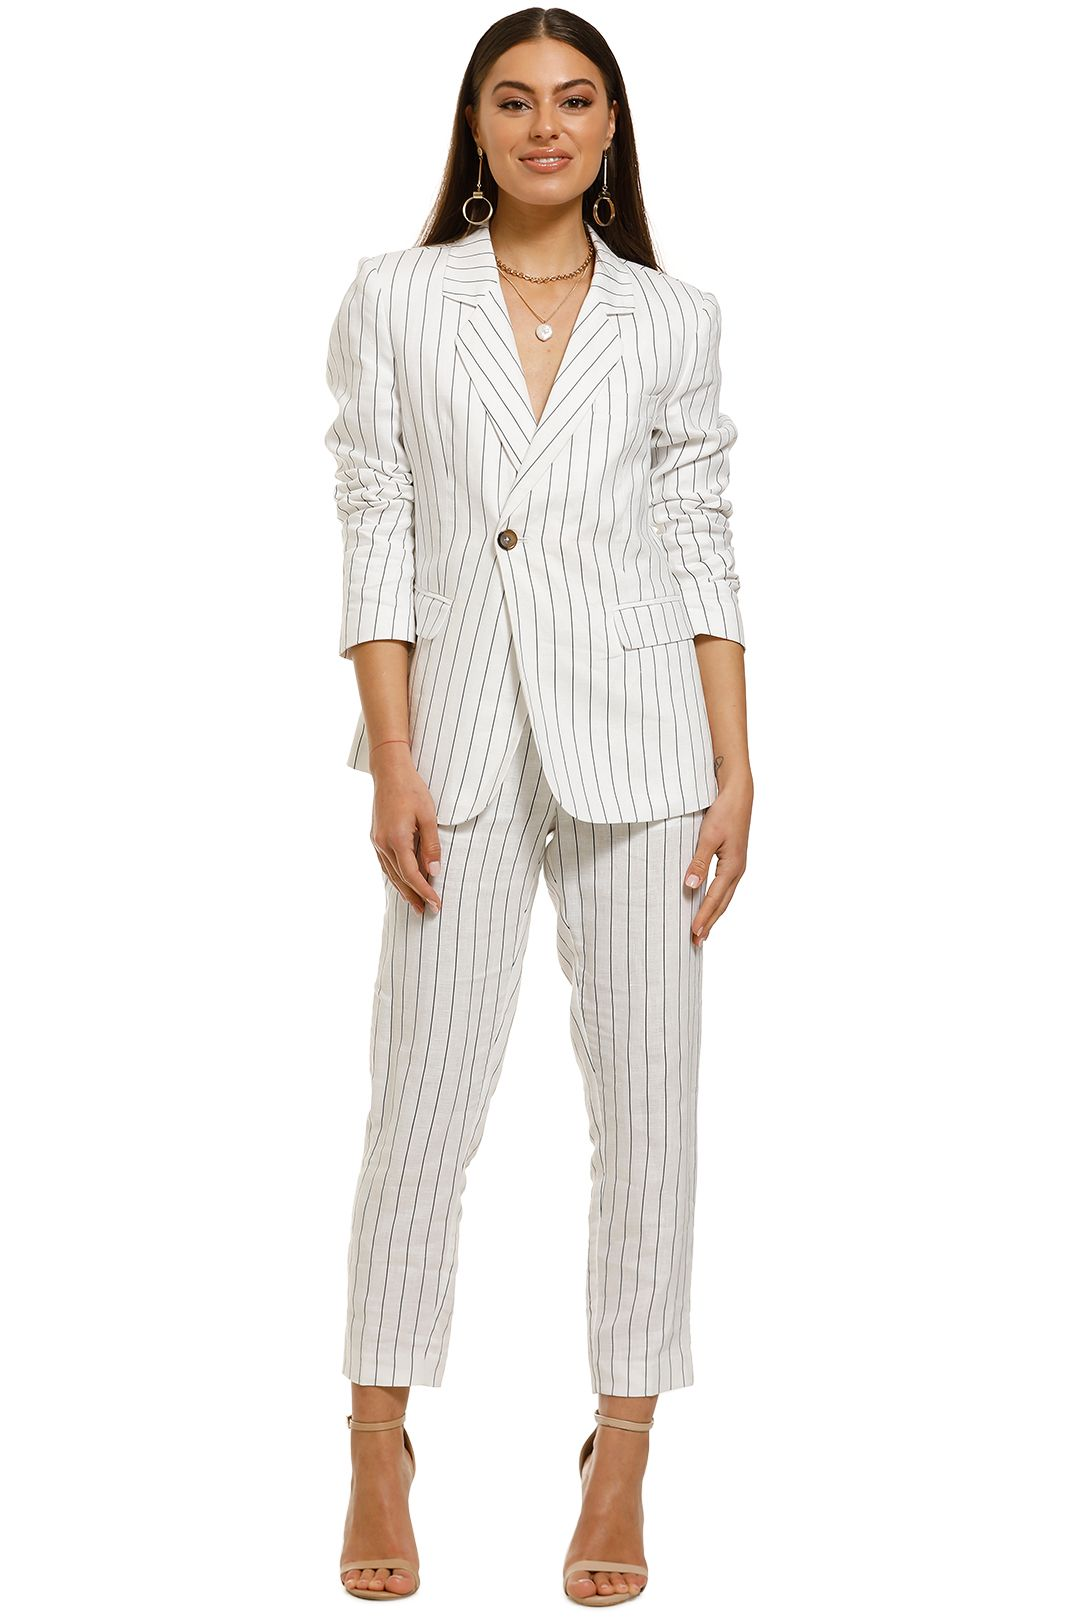 FWRD-The-Label-Cecilia-Jacket-and-Pant-Set-Black-White-Stripe-Front